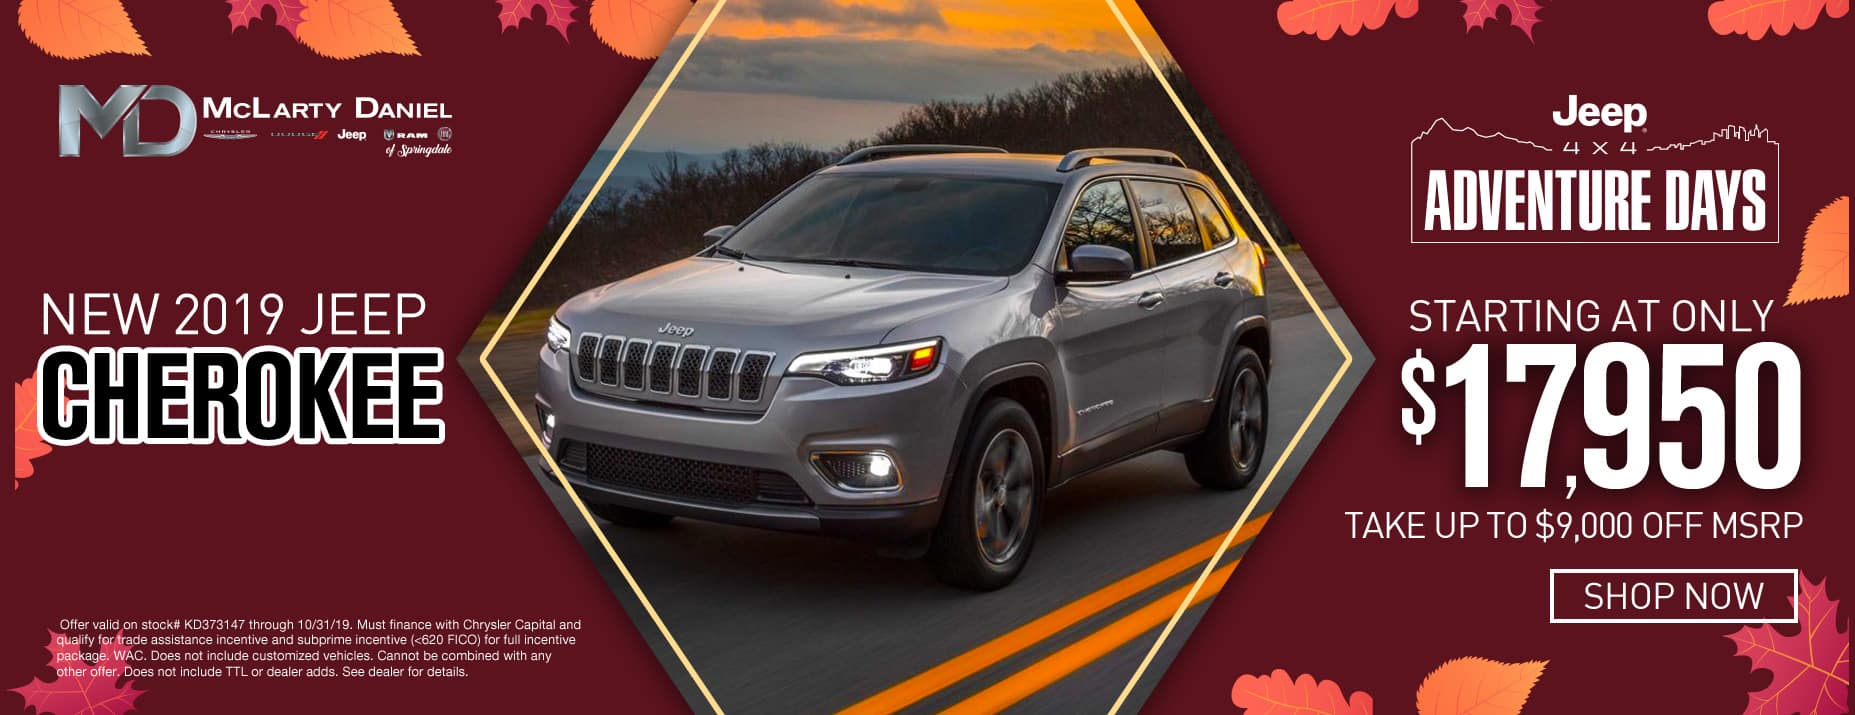 2019 Jeep Cherokee, starting at only $17,950